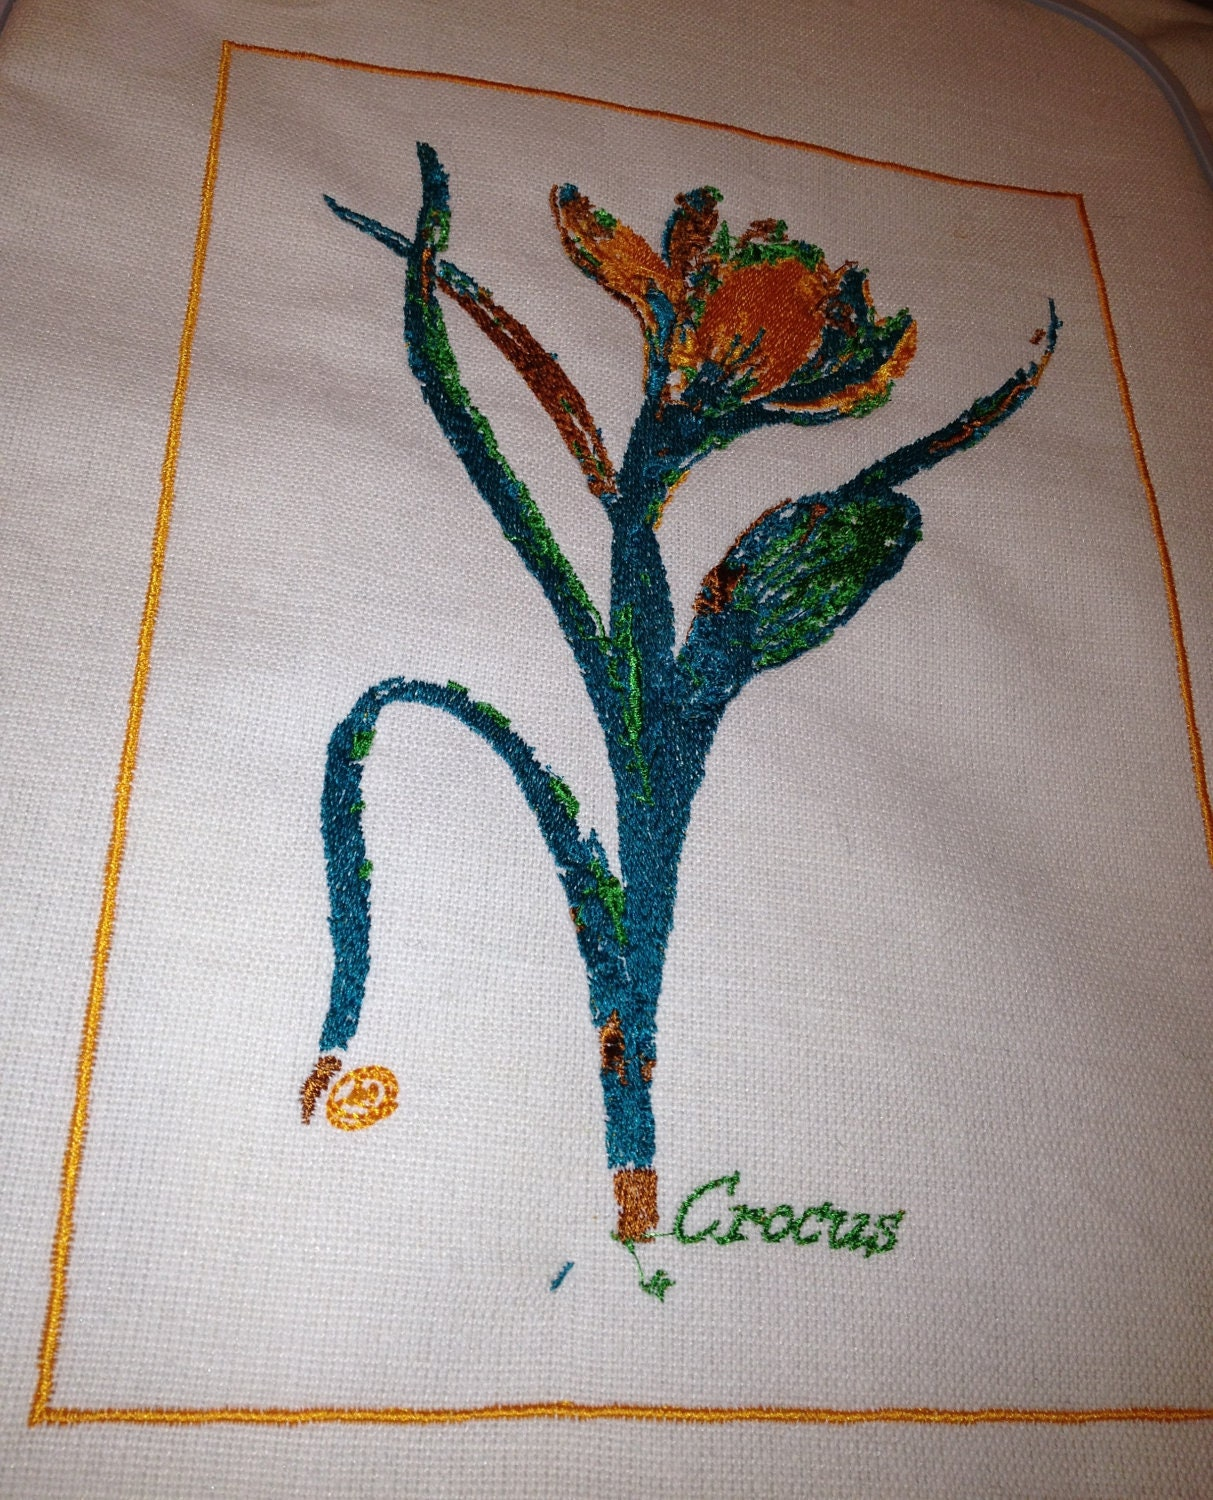 Crocus, Botanical Abstract Embroidery Art , Throw Cushion